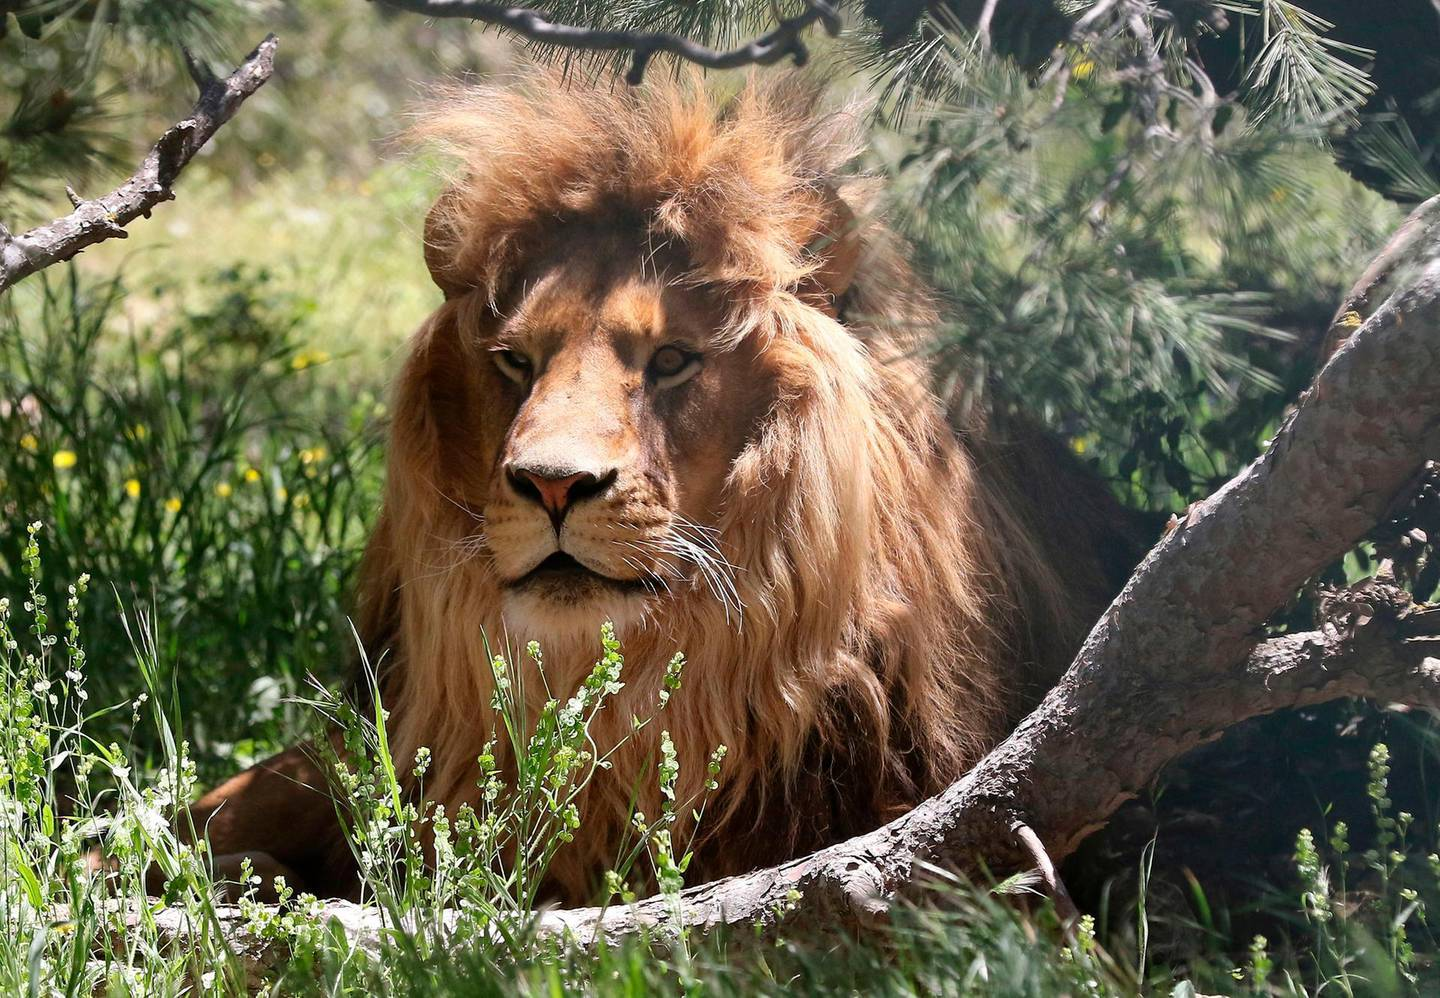 A lion rests in an enclosure on April 10, 2019, at the sanctuary in Jerash, some 50 kilometres north of the Jordanian capital. For more than a year after being moved to a Jordanian wildlife reserve from war-hit Syria, the bears Loz and Sukkar cowered when they heard a plane go by fearing bombardment. They are among dozens of animals that have been rescued from regional war zones, including the Israeli-blockaded Gaza Strip, and brought to the kingdom's Al Ma'wa For Nature and Wildlife. / AFP / afp / Khalil MAZRAAWI